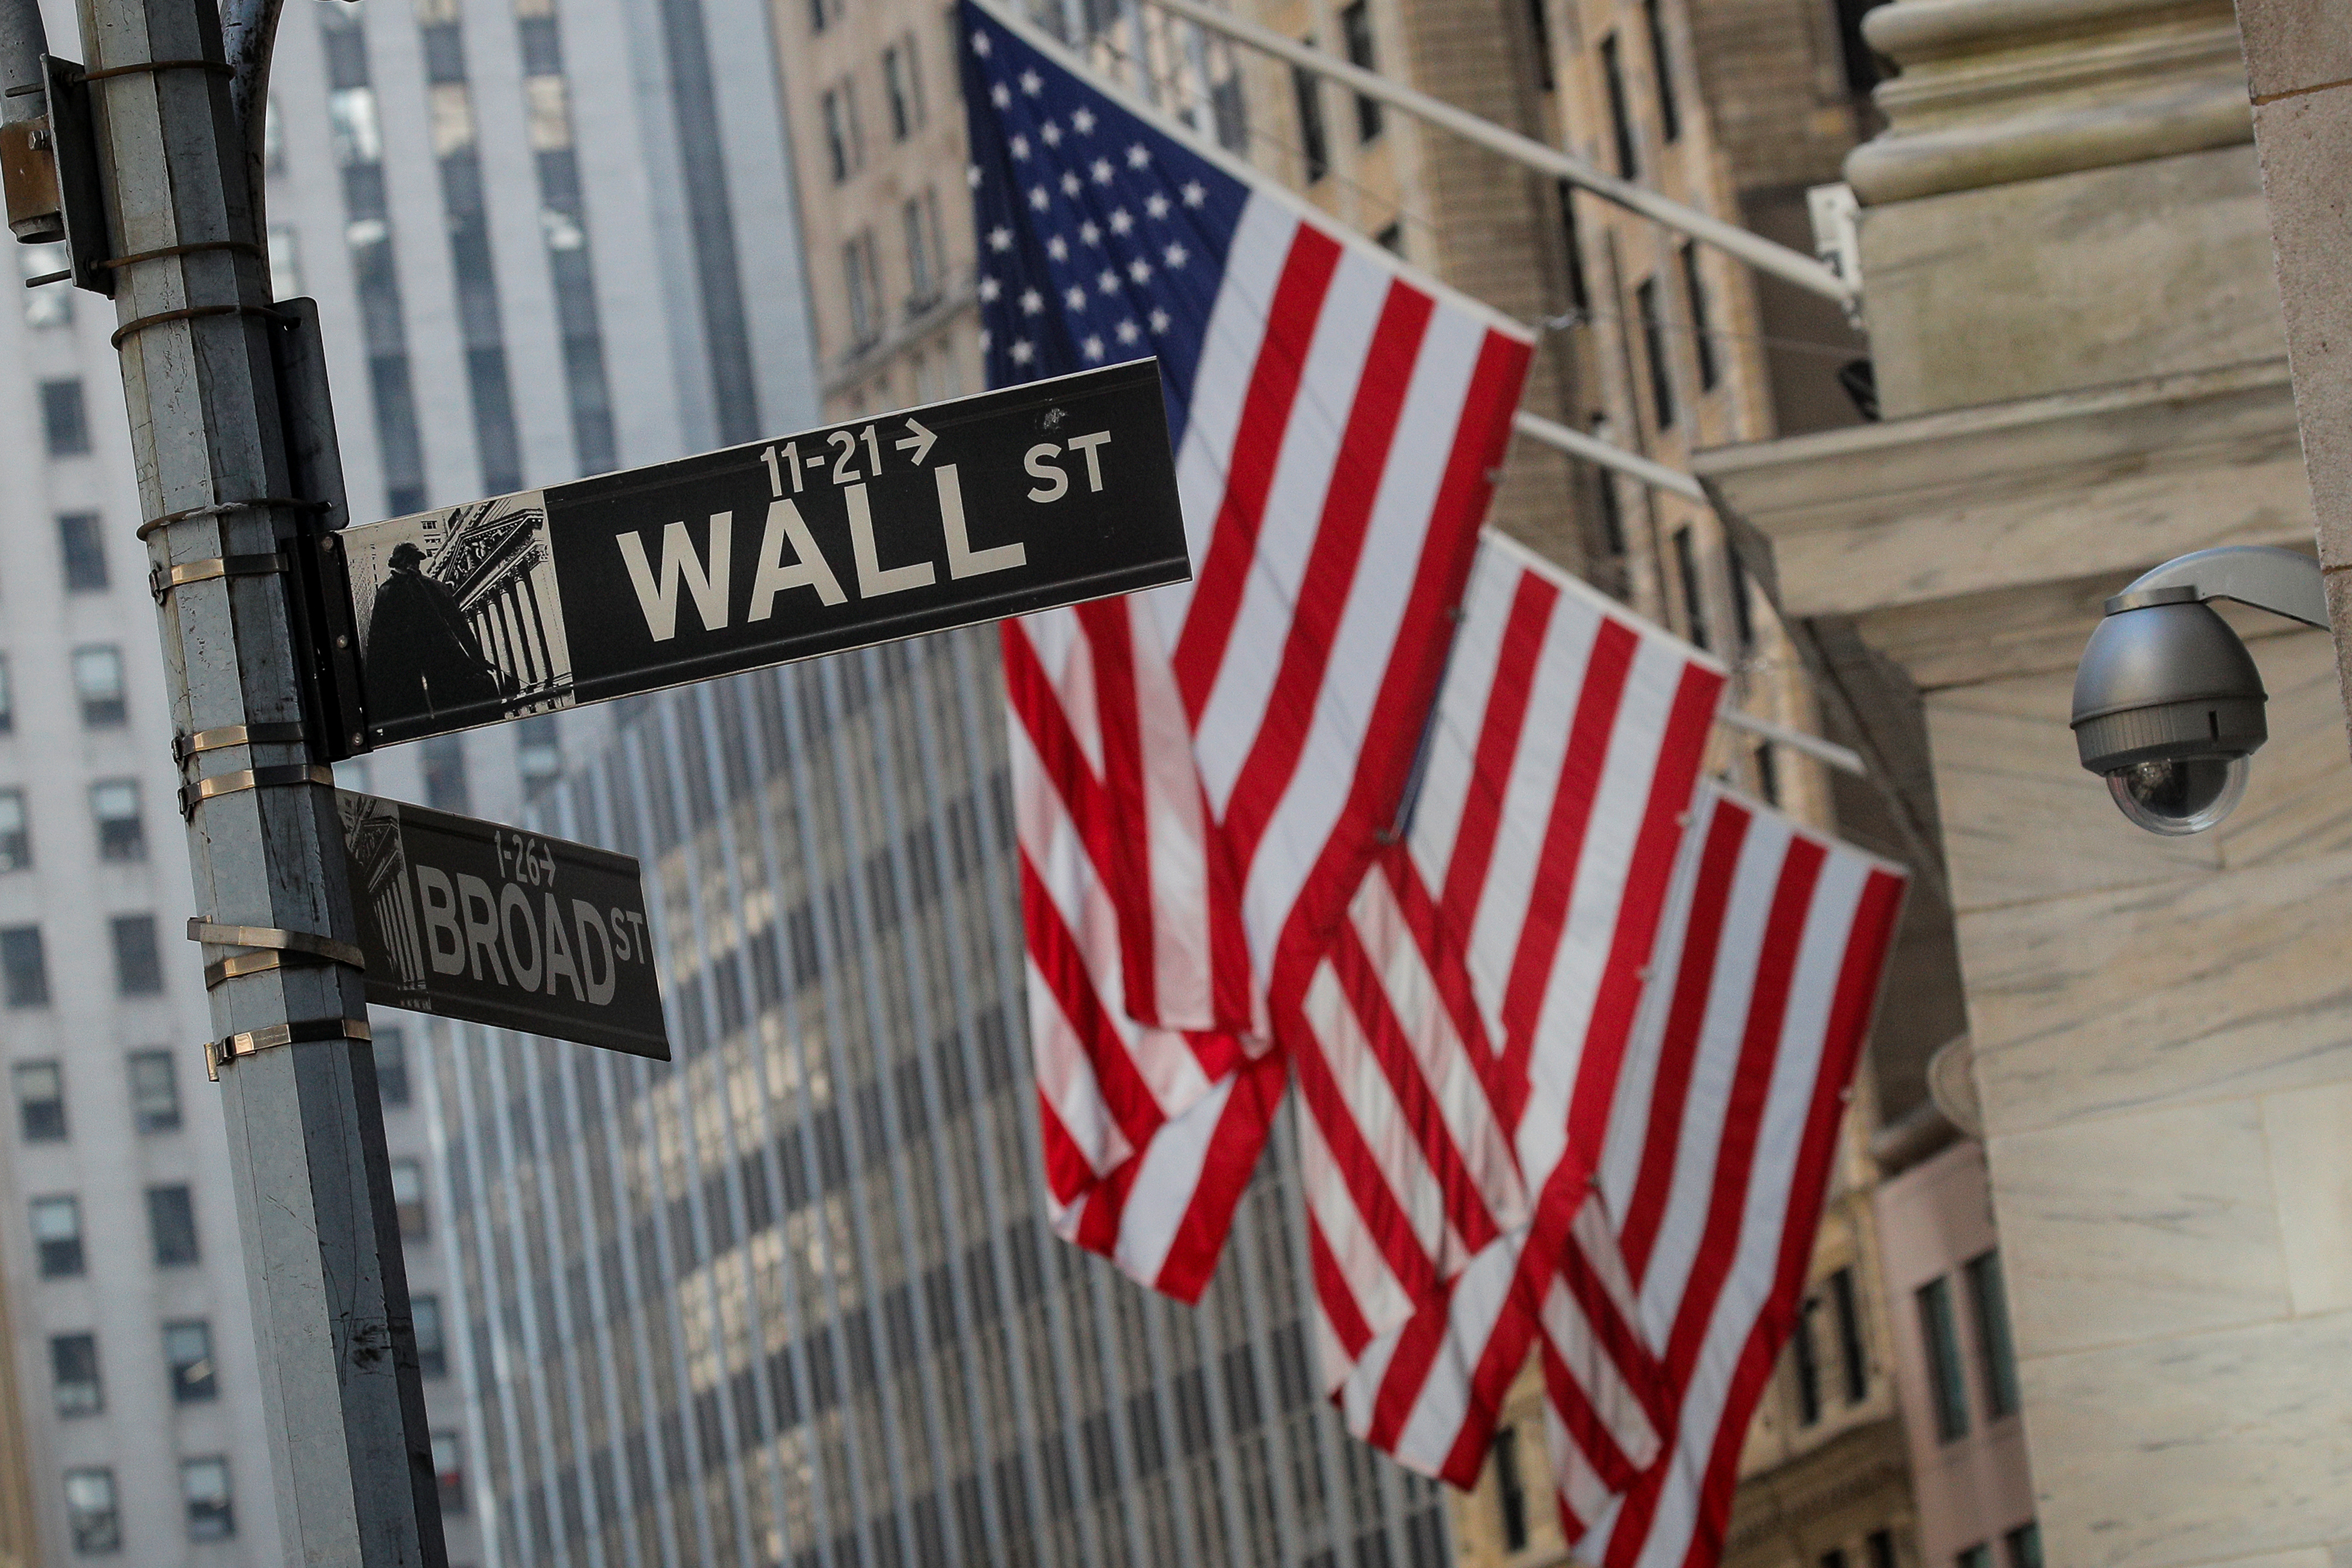 A Wall St. sign is seen outside the New York Stock Exchange (NYSE) in the financial district in New York City, U.S., March 2, 2020. REUTERS/Brendan McDermid